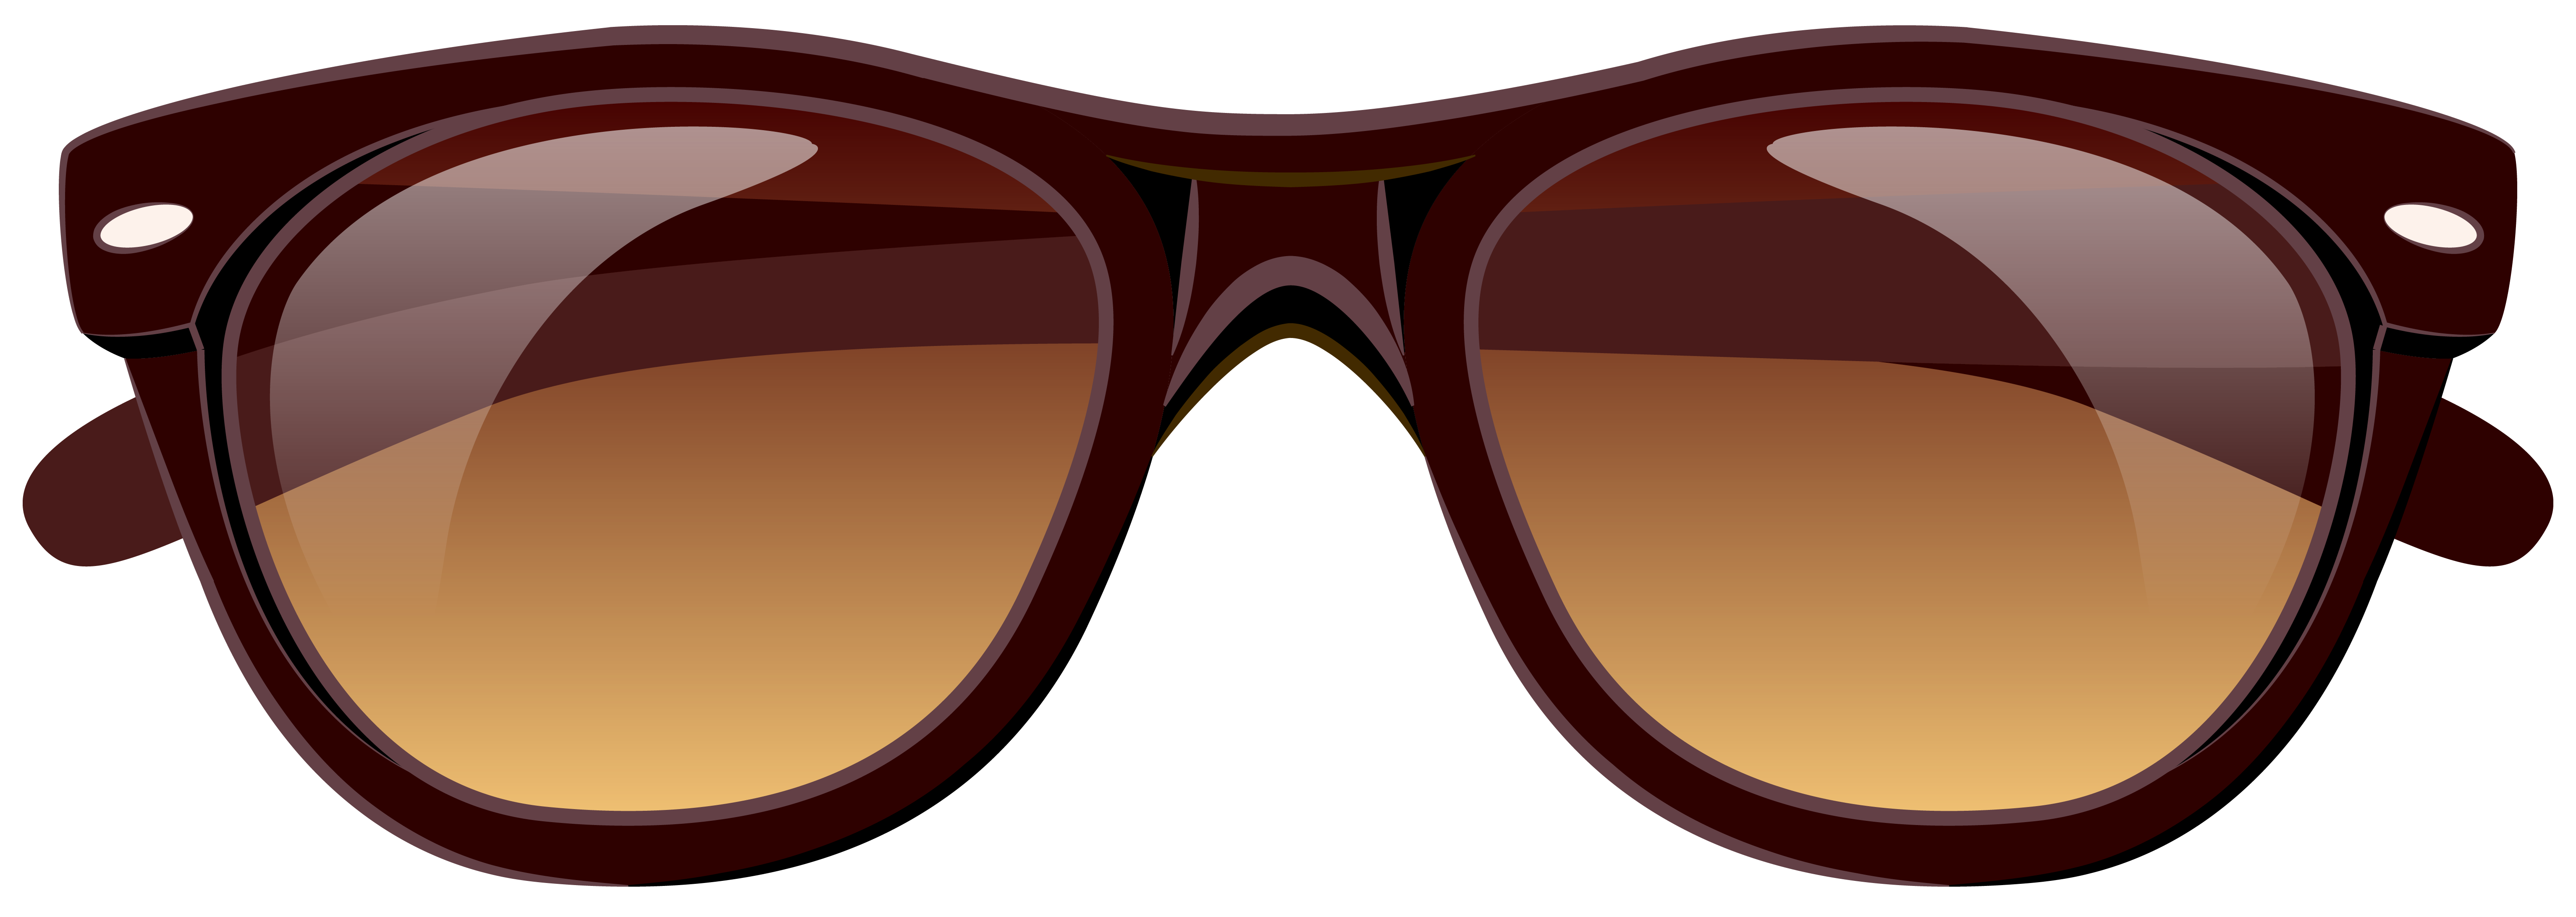 Free sun glasses clipart image black and white download Brown Sunglasses PNG Clipart Picture | Gallery Yopriceville - High ... image black and white download